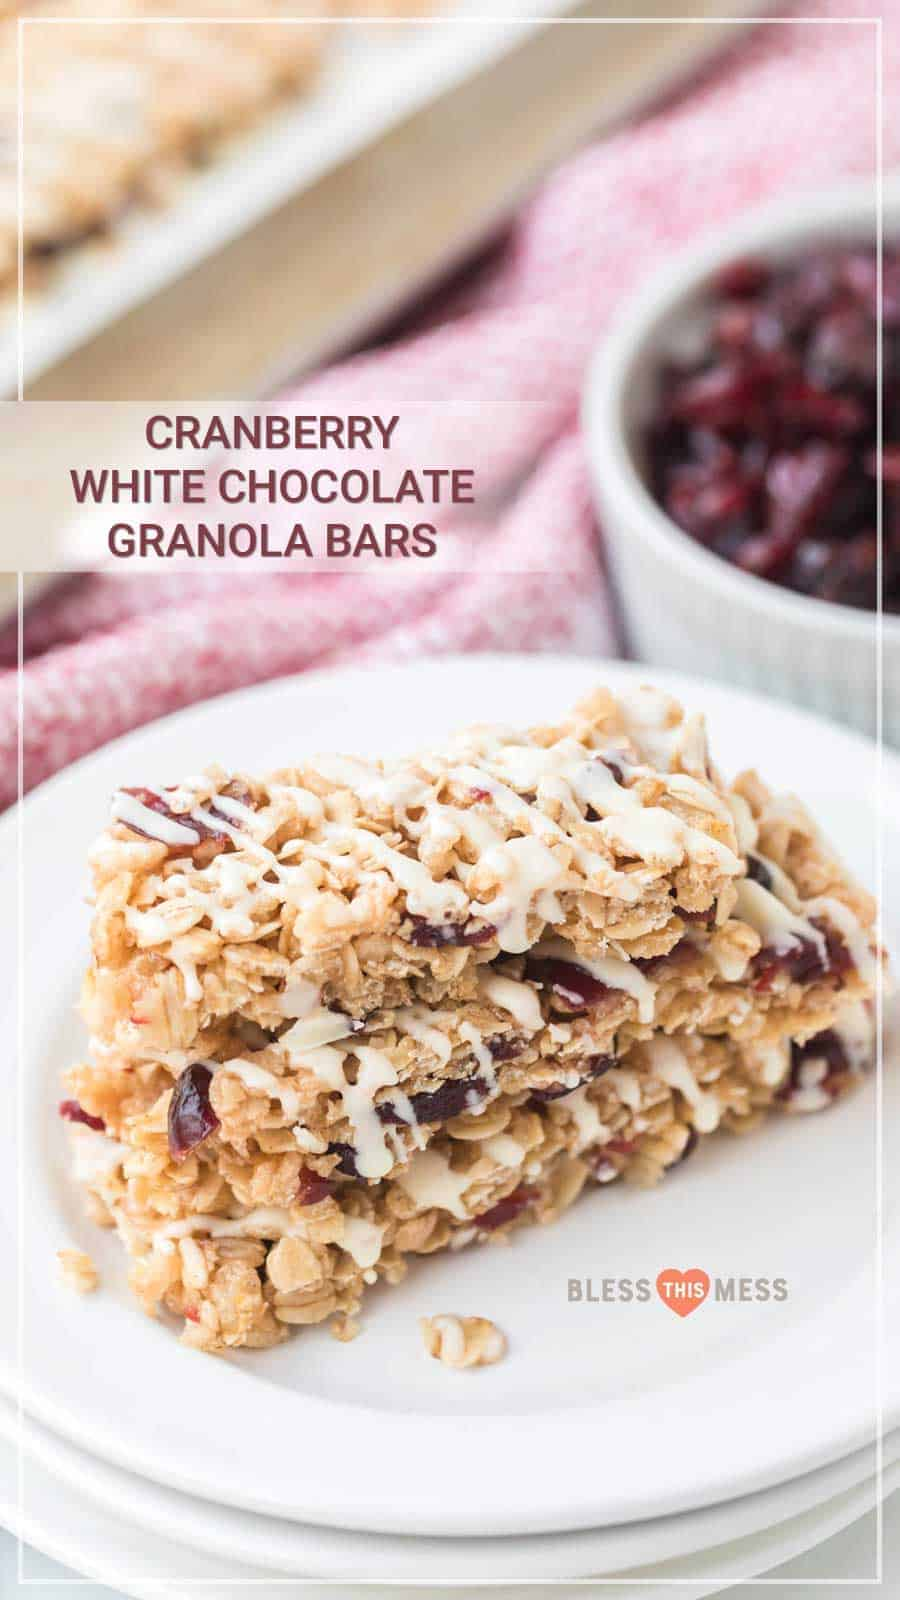 White chocolate and cranberry granola bars are the perfect grab-and-go snack, and they are so simple to make at the beginning of the week to have on the go all week long. I love a granola bar because it's packed with nutrients and vitamins, and these ones taste indulgent even though they're full of nutritious ingredients! #granolabars #homemadegranolabars #cranberrywhitechocolate #proteinbars #snack #homemadesnack #snackrecipes